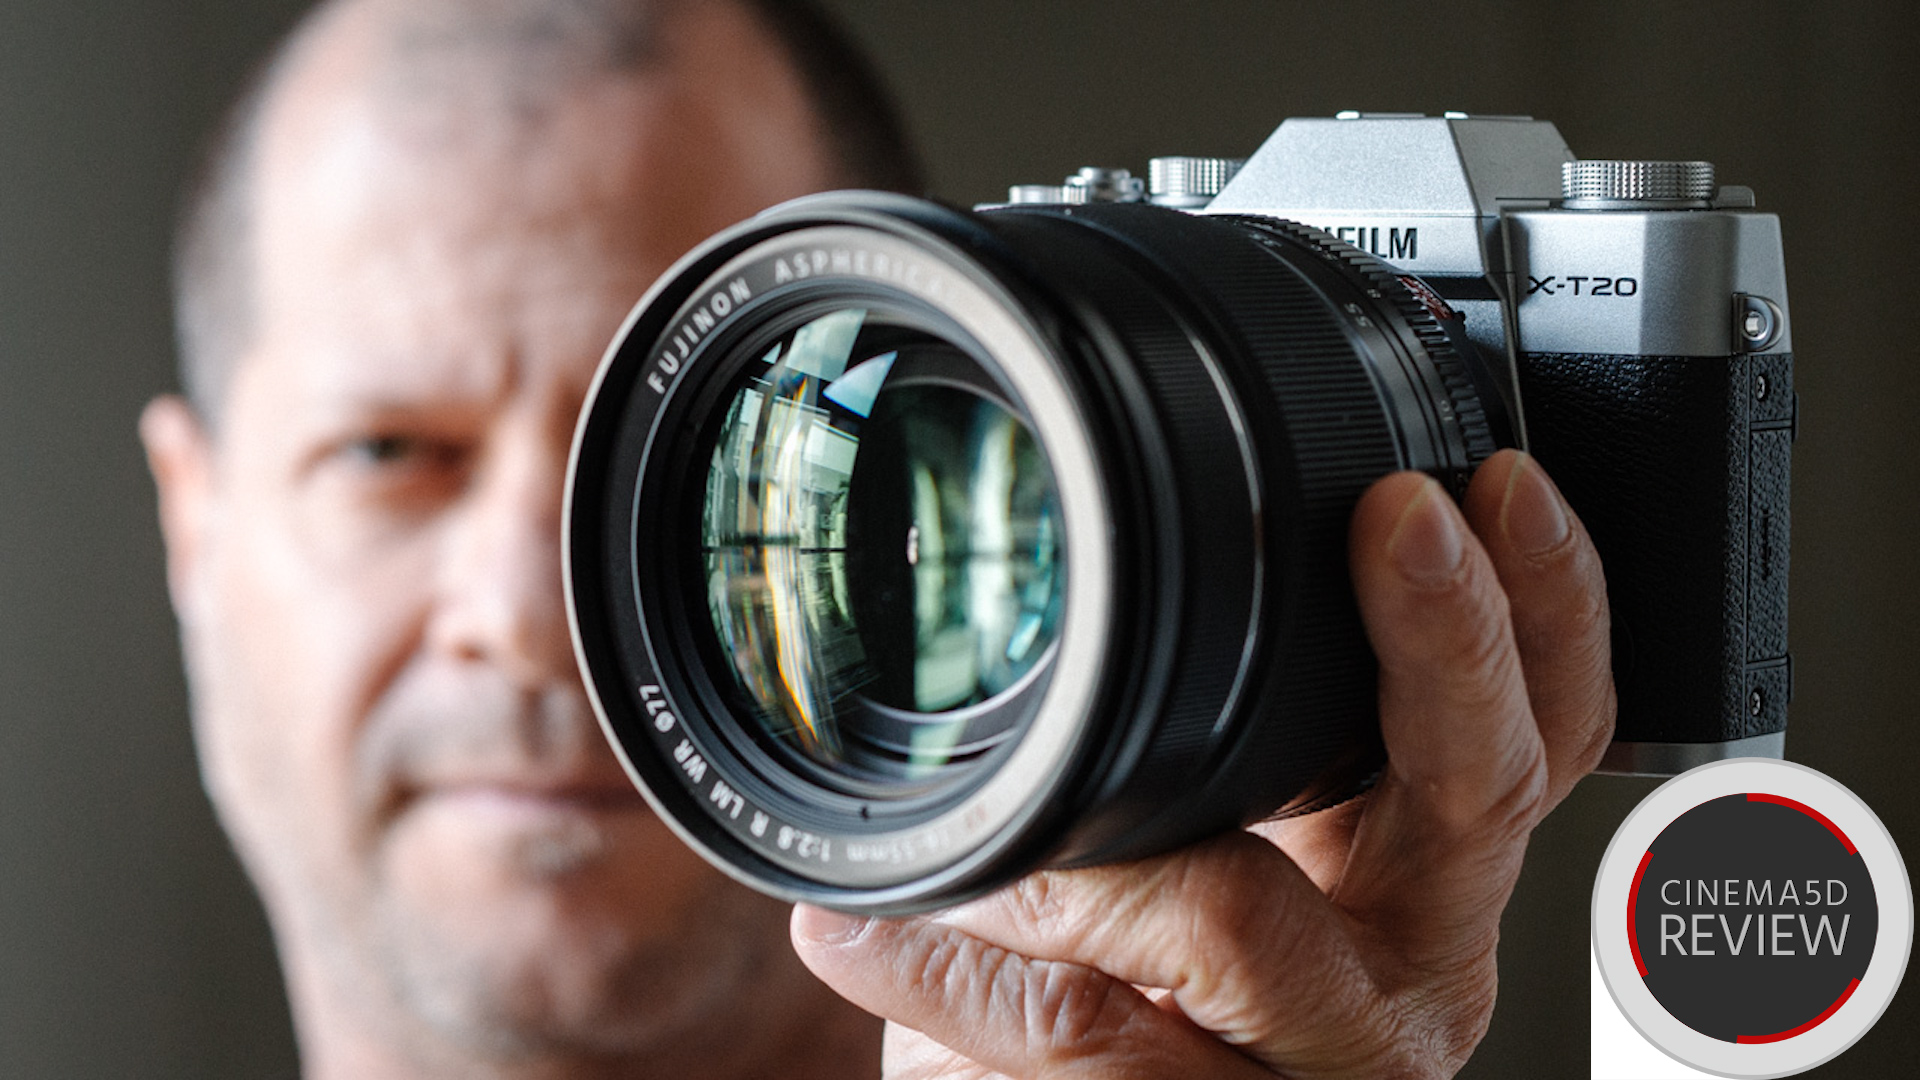 Fujifilm X T20 Review Real World Video Samples And First E3 Kit Xf 18 55mm Silver 35mm F2 Impressions Cinema5d